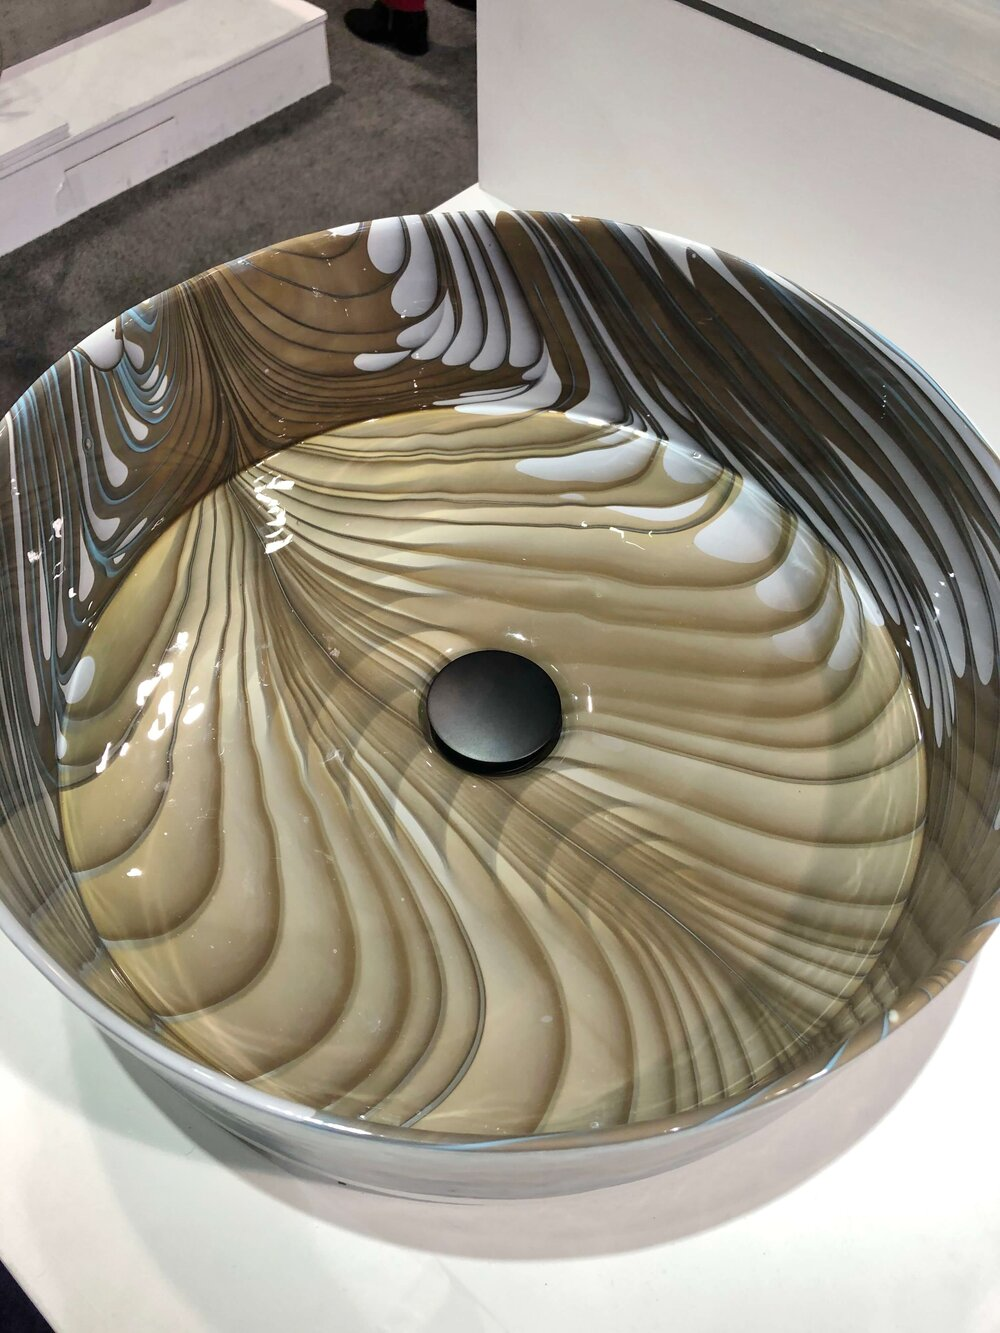 Murano glass vessel sink with a wavy beige pattern by Native Trails